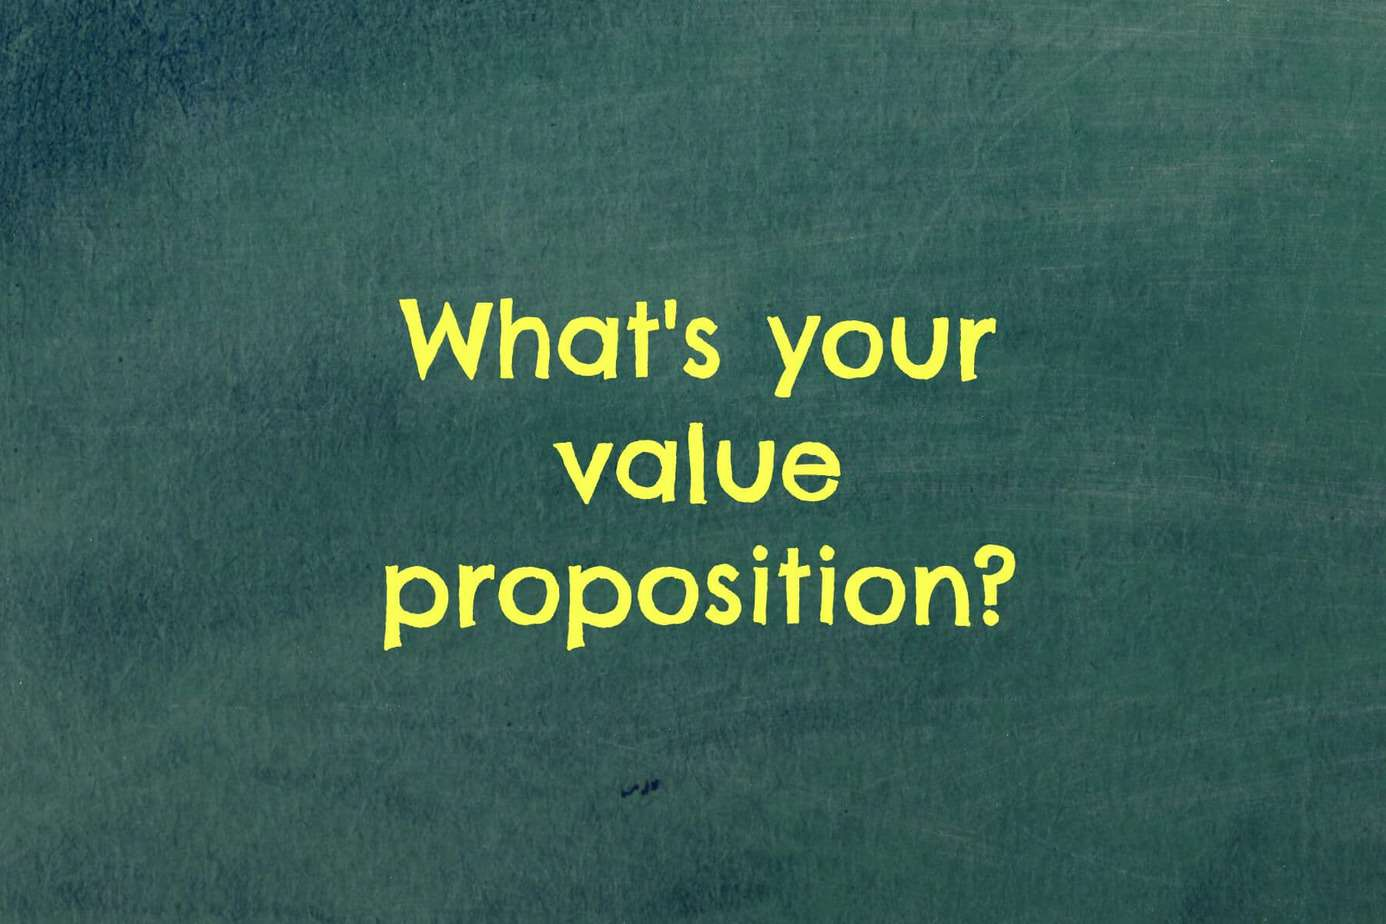 What is your value proposition as a freelance writer?